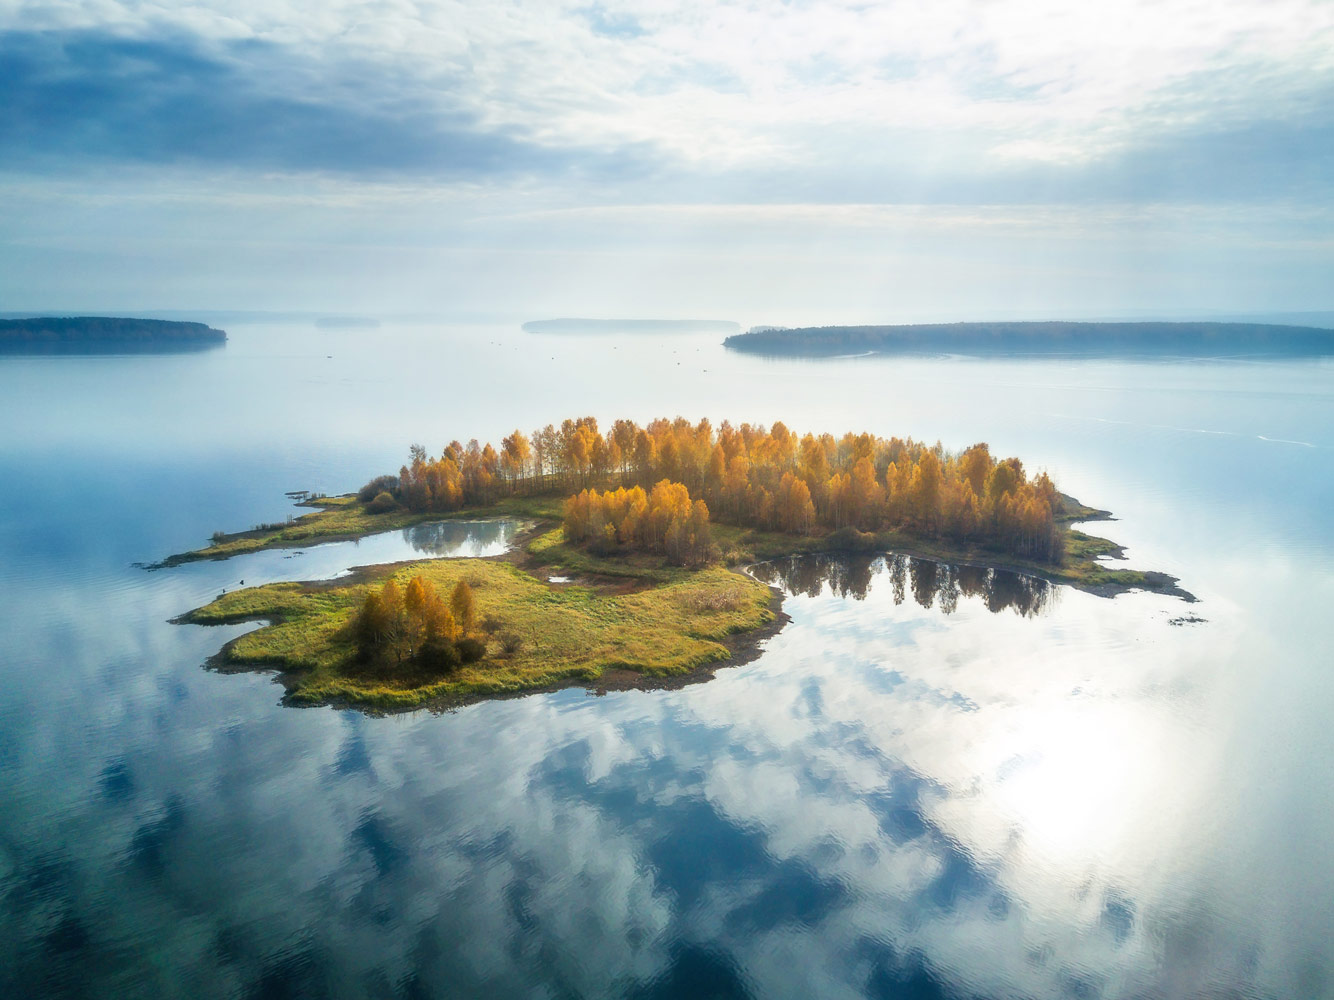 Soaring Island, © Vasily Yakovlev, 1st Place, Russian Civilization International Photo Contest